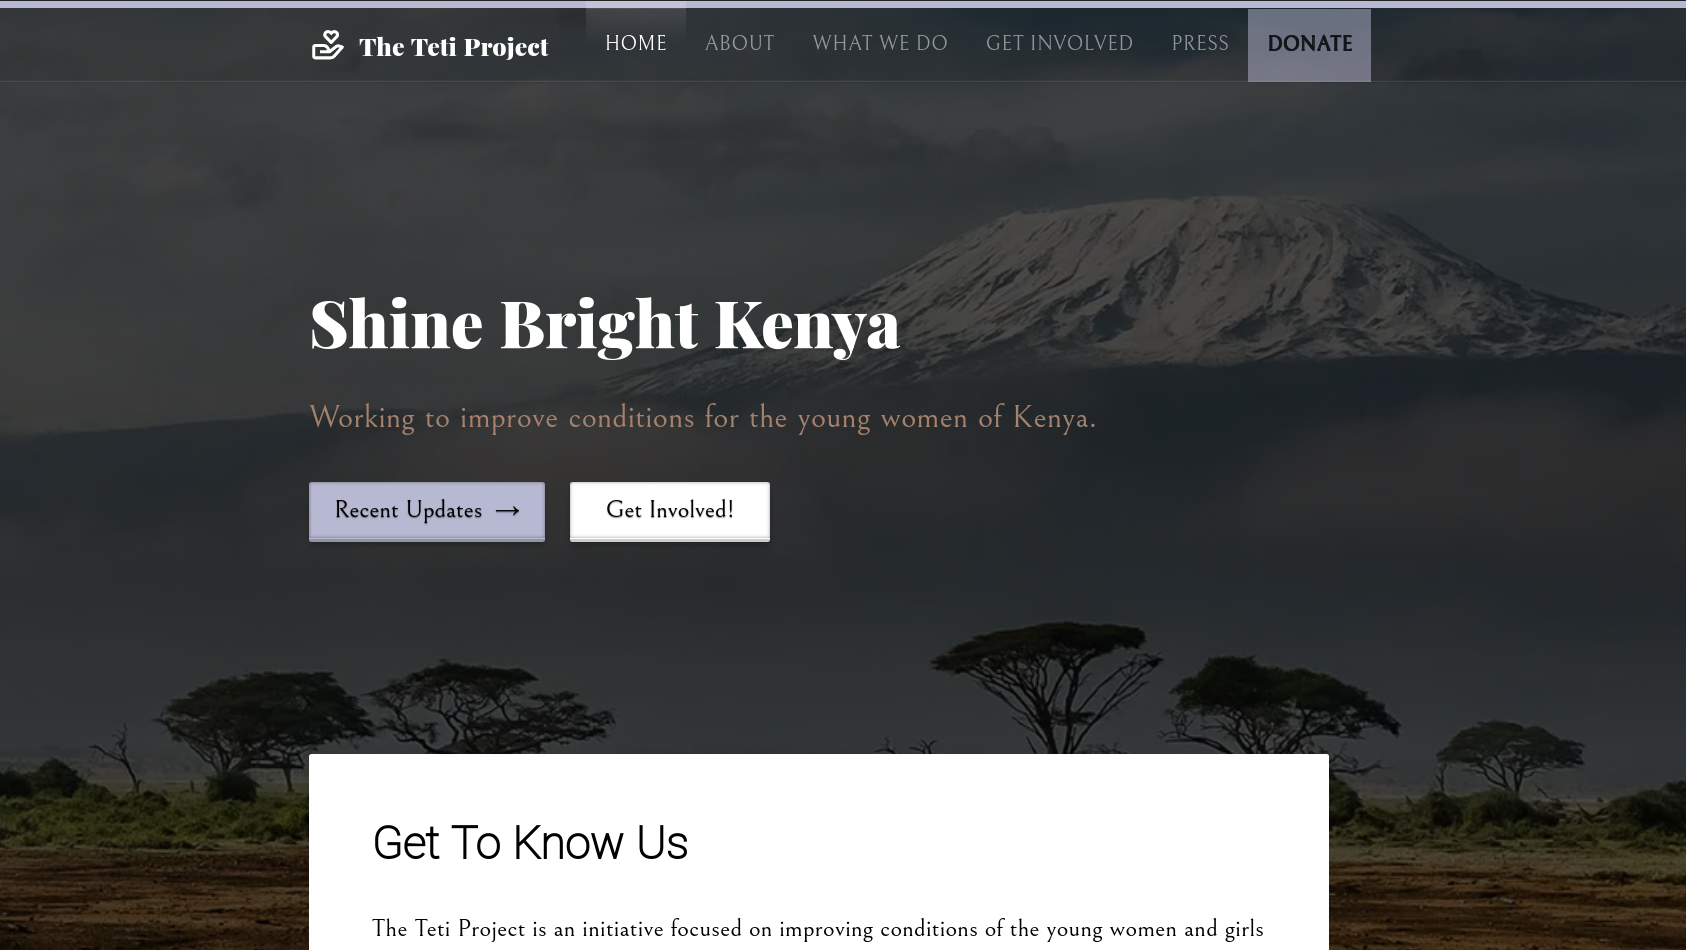 Homepage for The Teti Project website